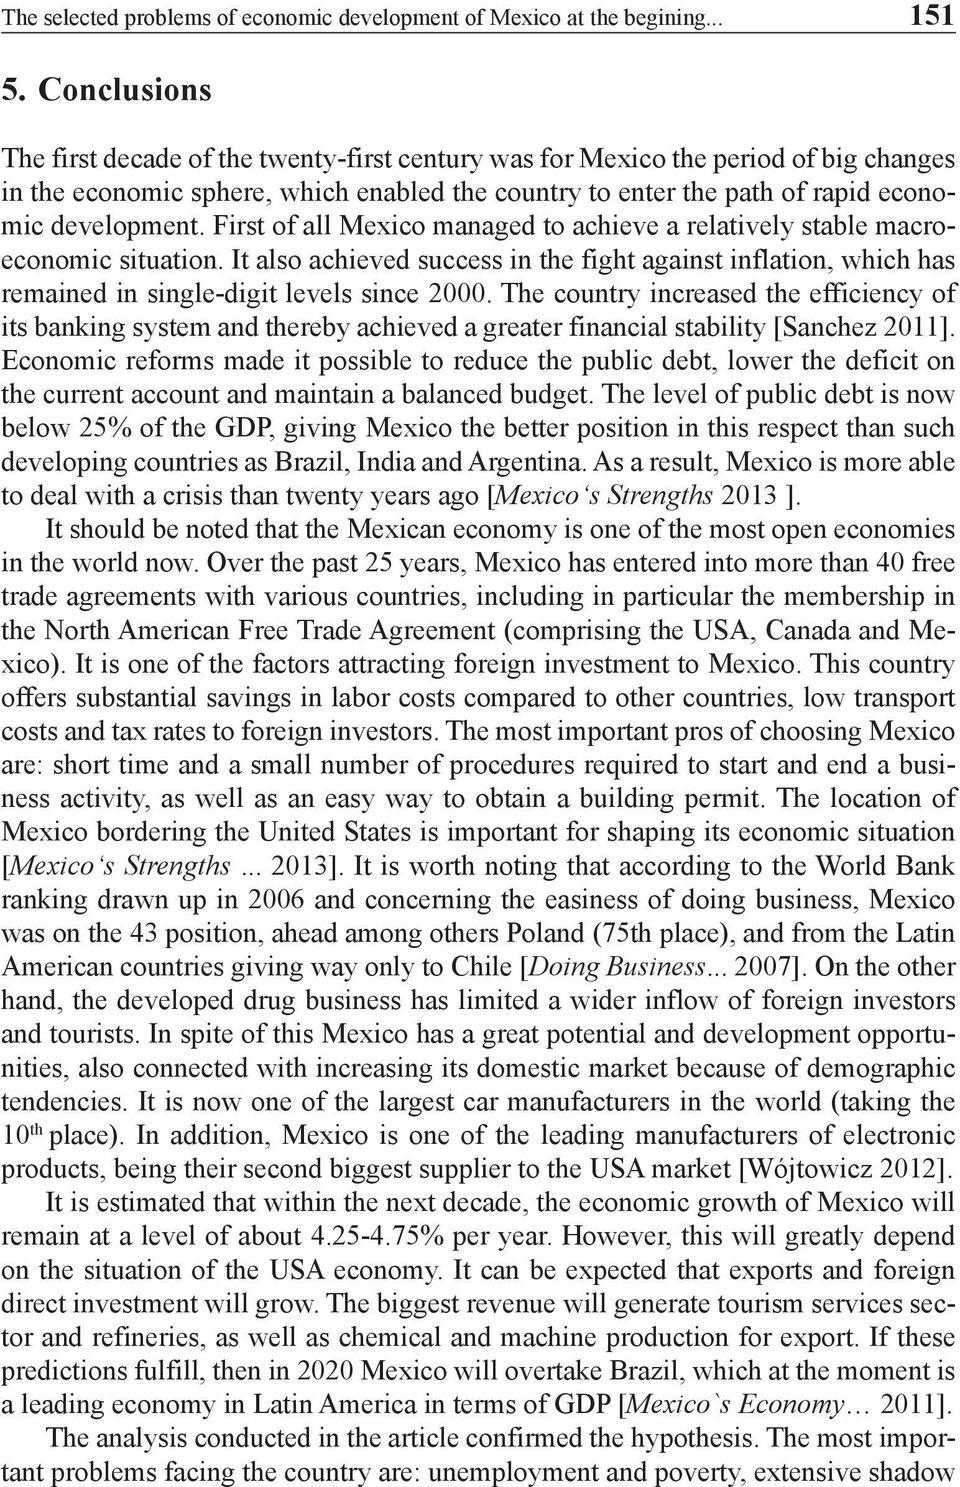 First of all Mexico managed to achieve a relatively stable macroeconomic situation. It also achieved success in the fight against inflation, which has remained in single-digit levels since 2000.